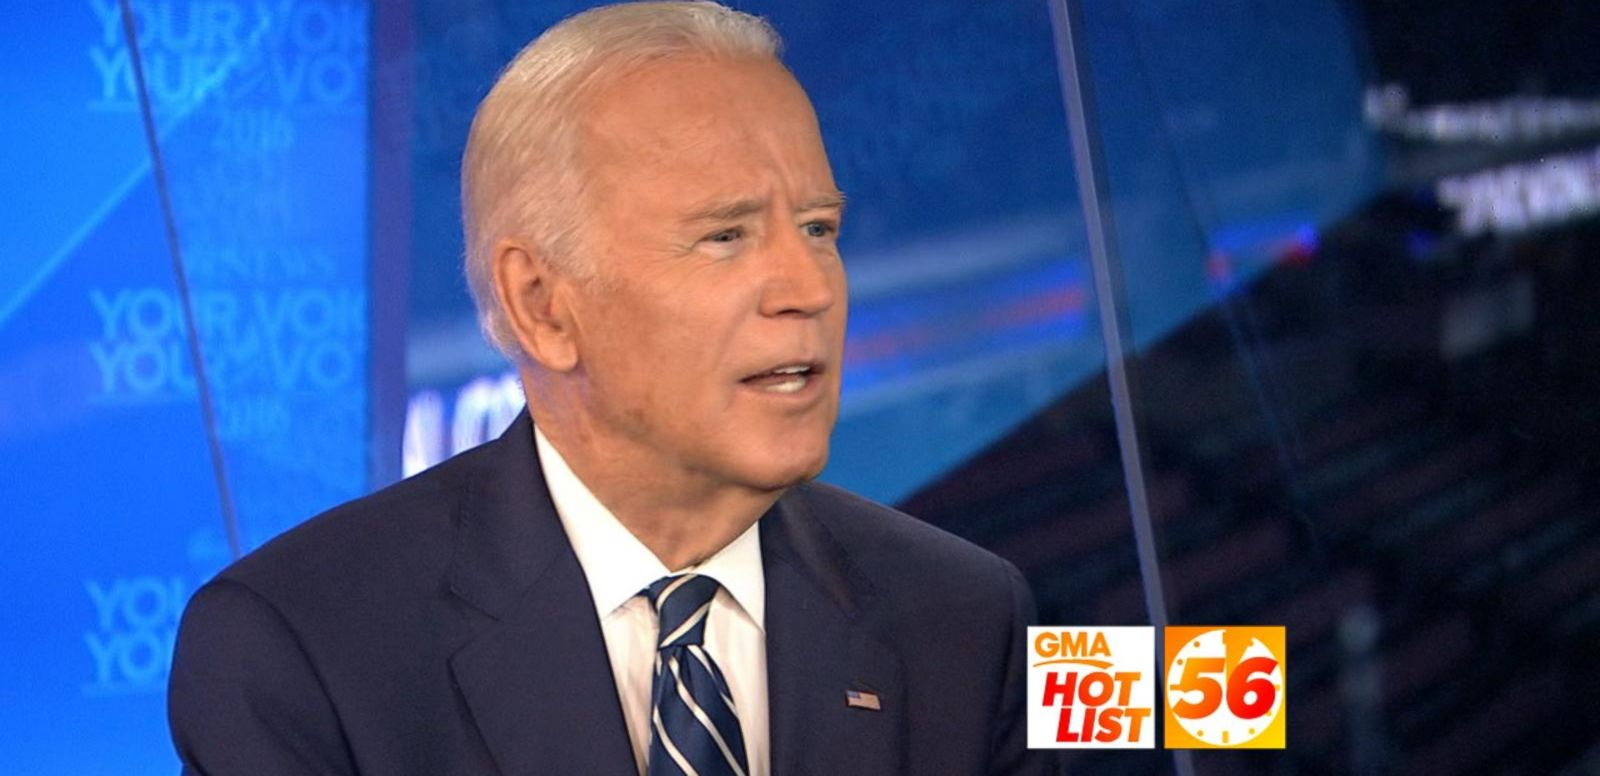 VIDEO: 'GMA' Hot List: Joe Biden on Democratic Party Unity